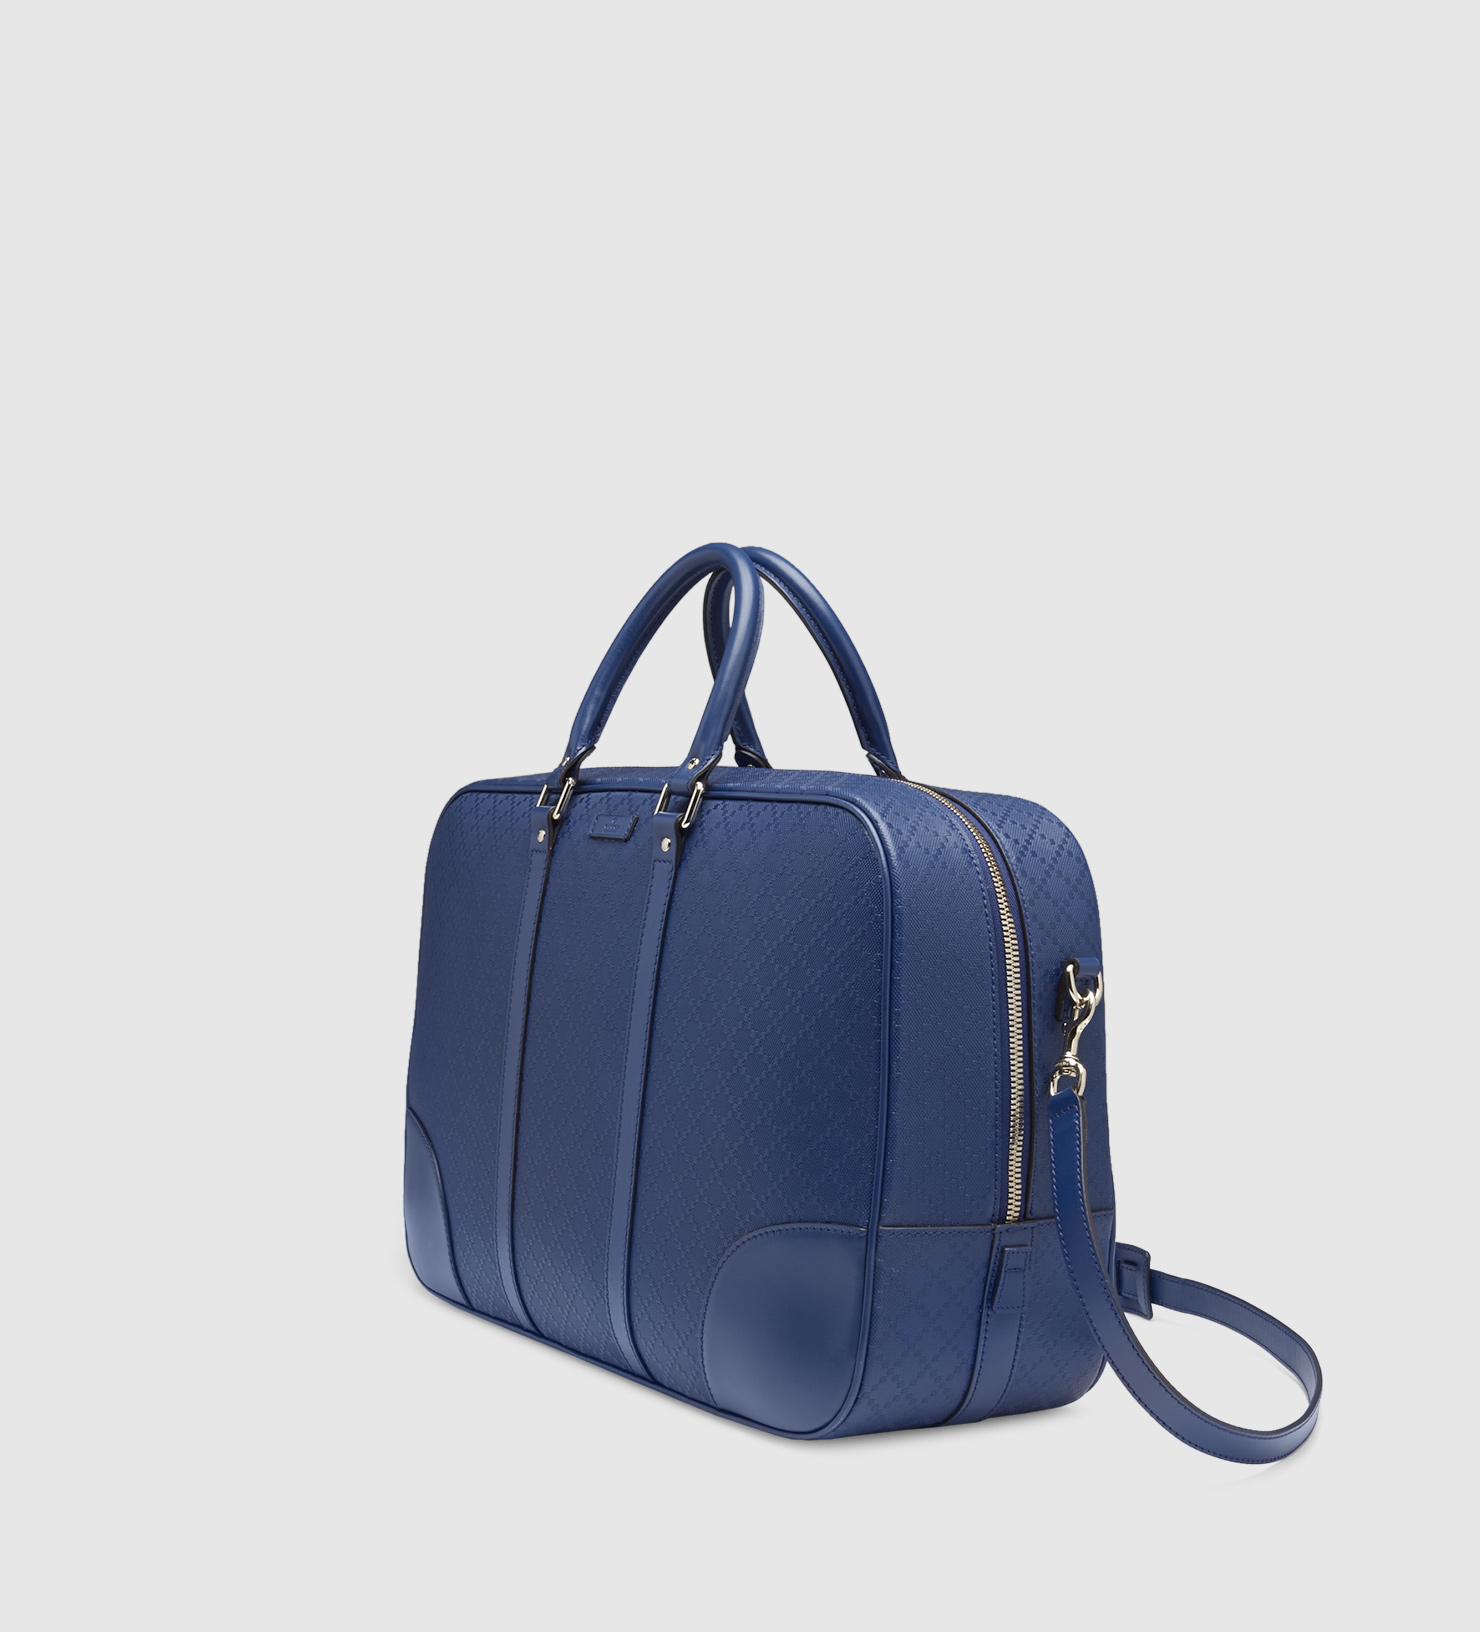 ce65ba3f952 Gucci Bright Diamante Leather Duffle Bag in Blue for Men - Lyst